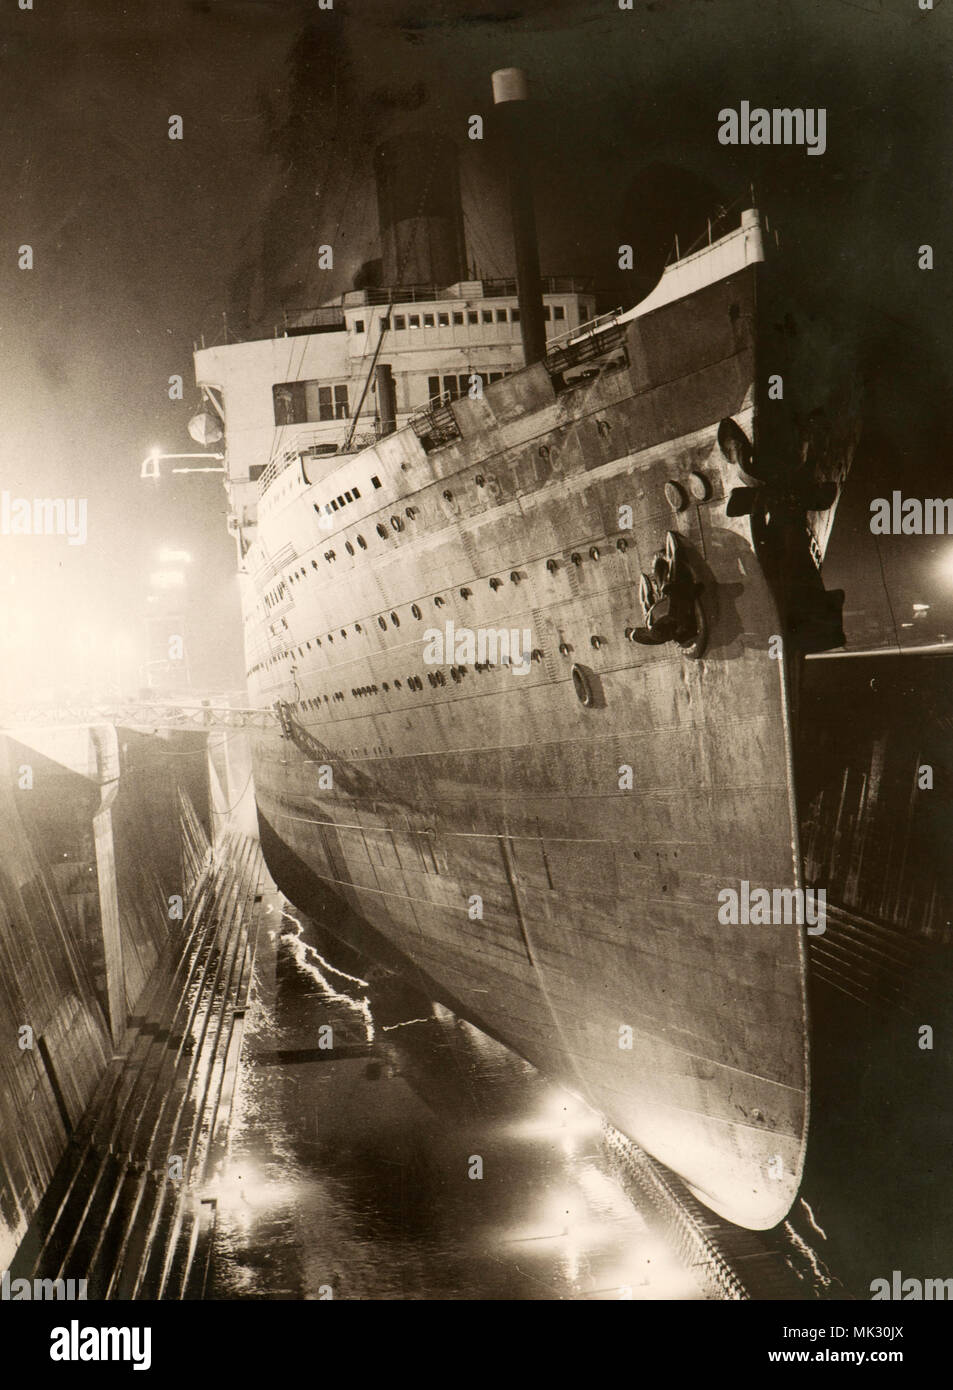 The Majestic liner undergoing refurbishment works in Southampton dry docks Associated Press photo (1930s) - Stock Image